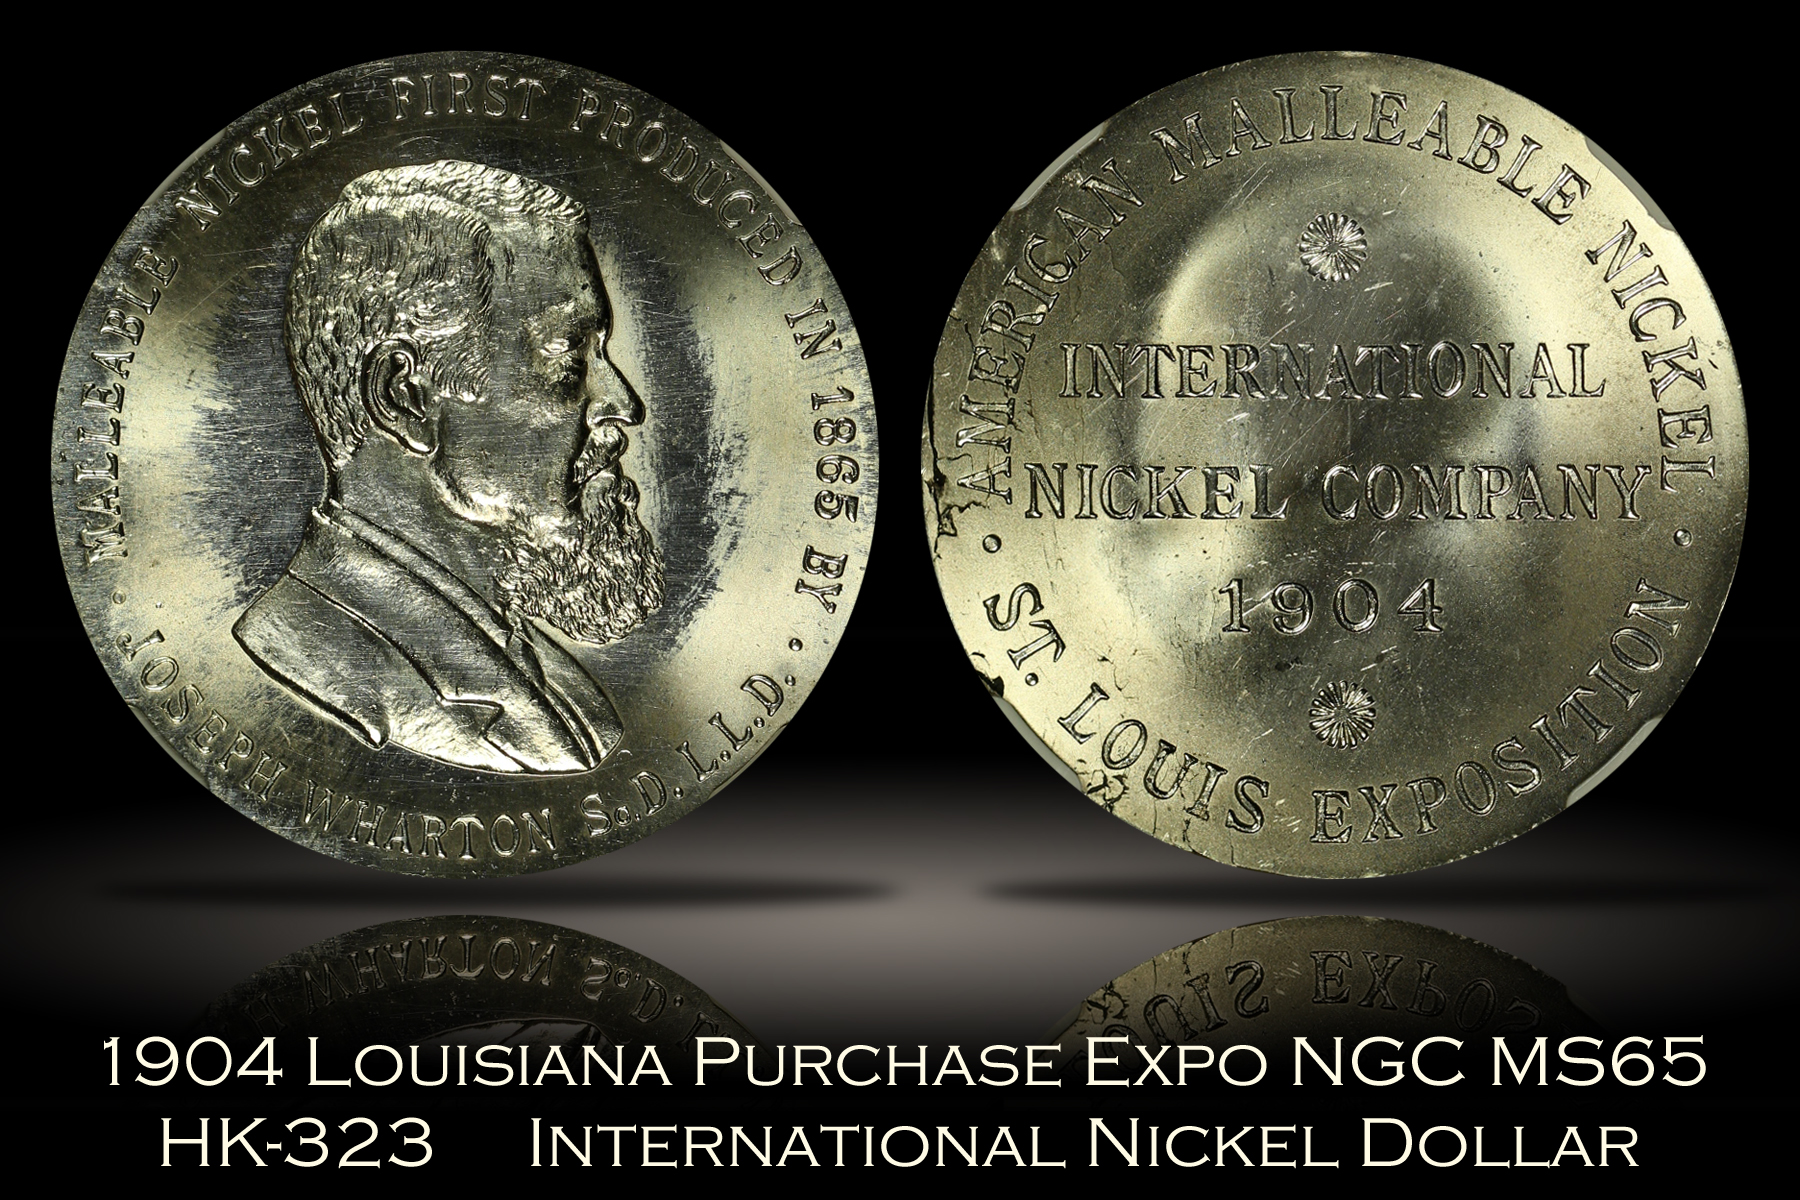 1904 Louisiana Purchase Expo International Nickel Dollar HK-323 NGC MS65